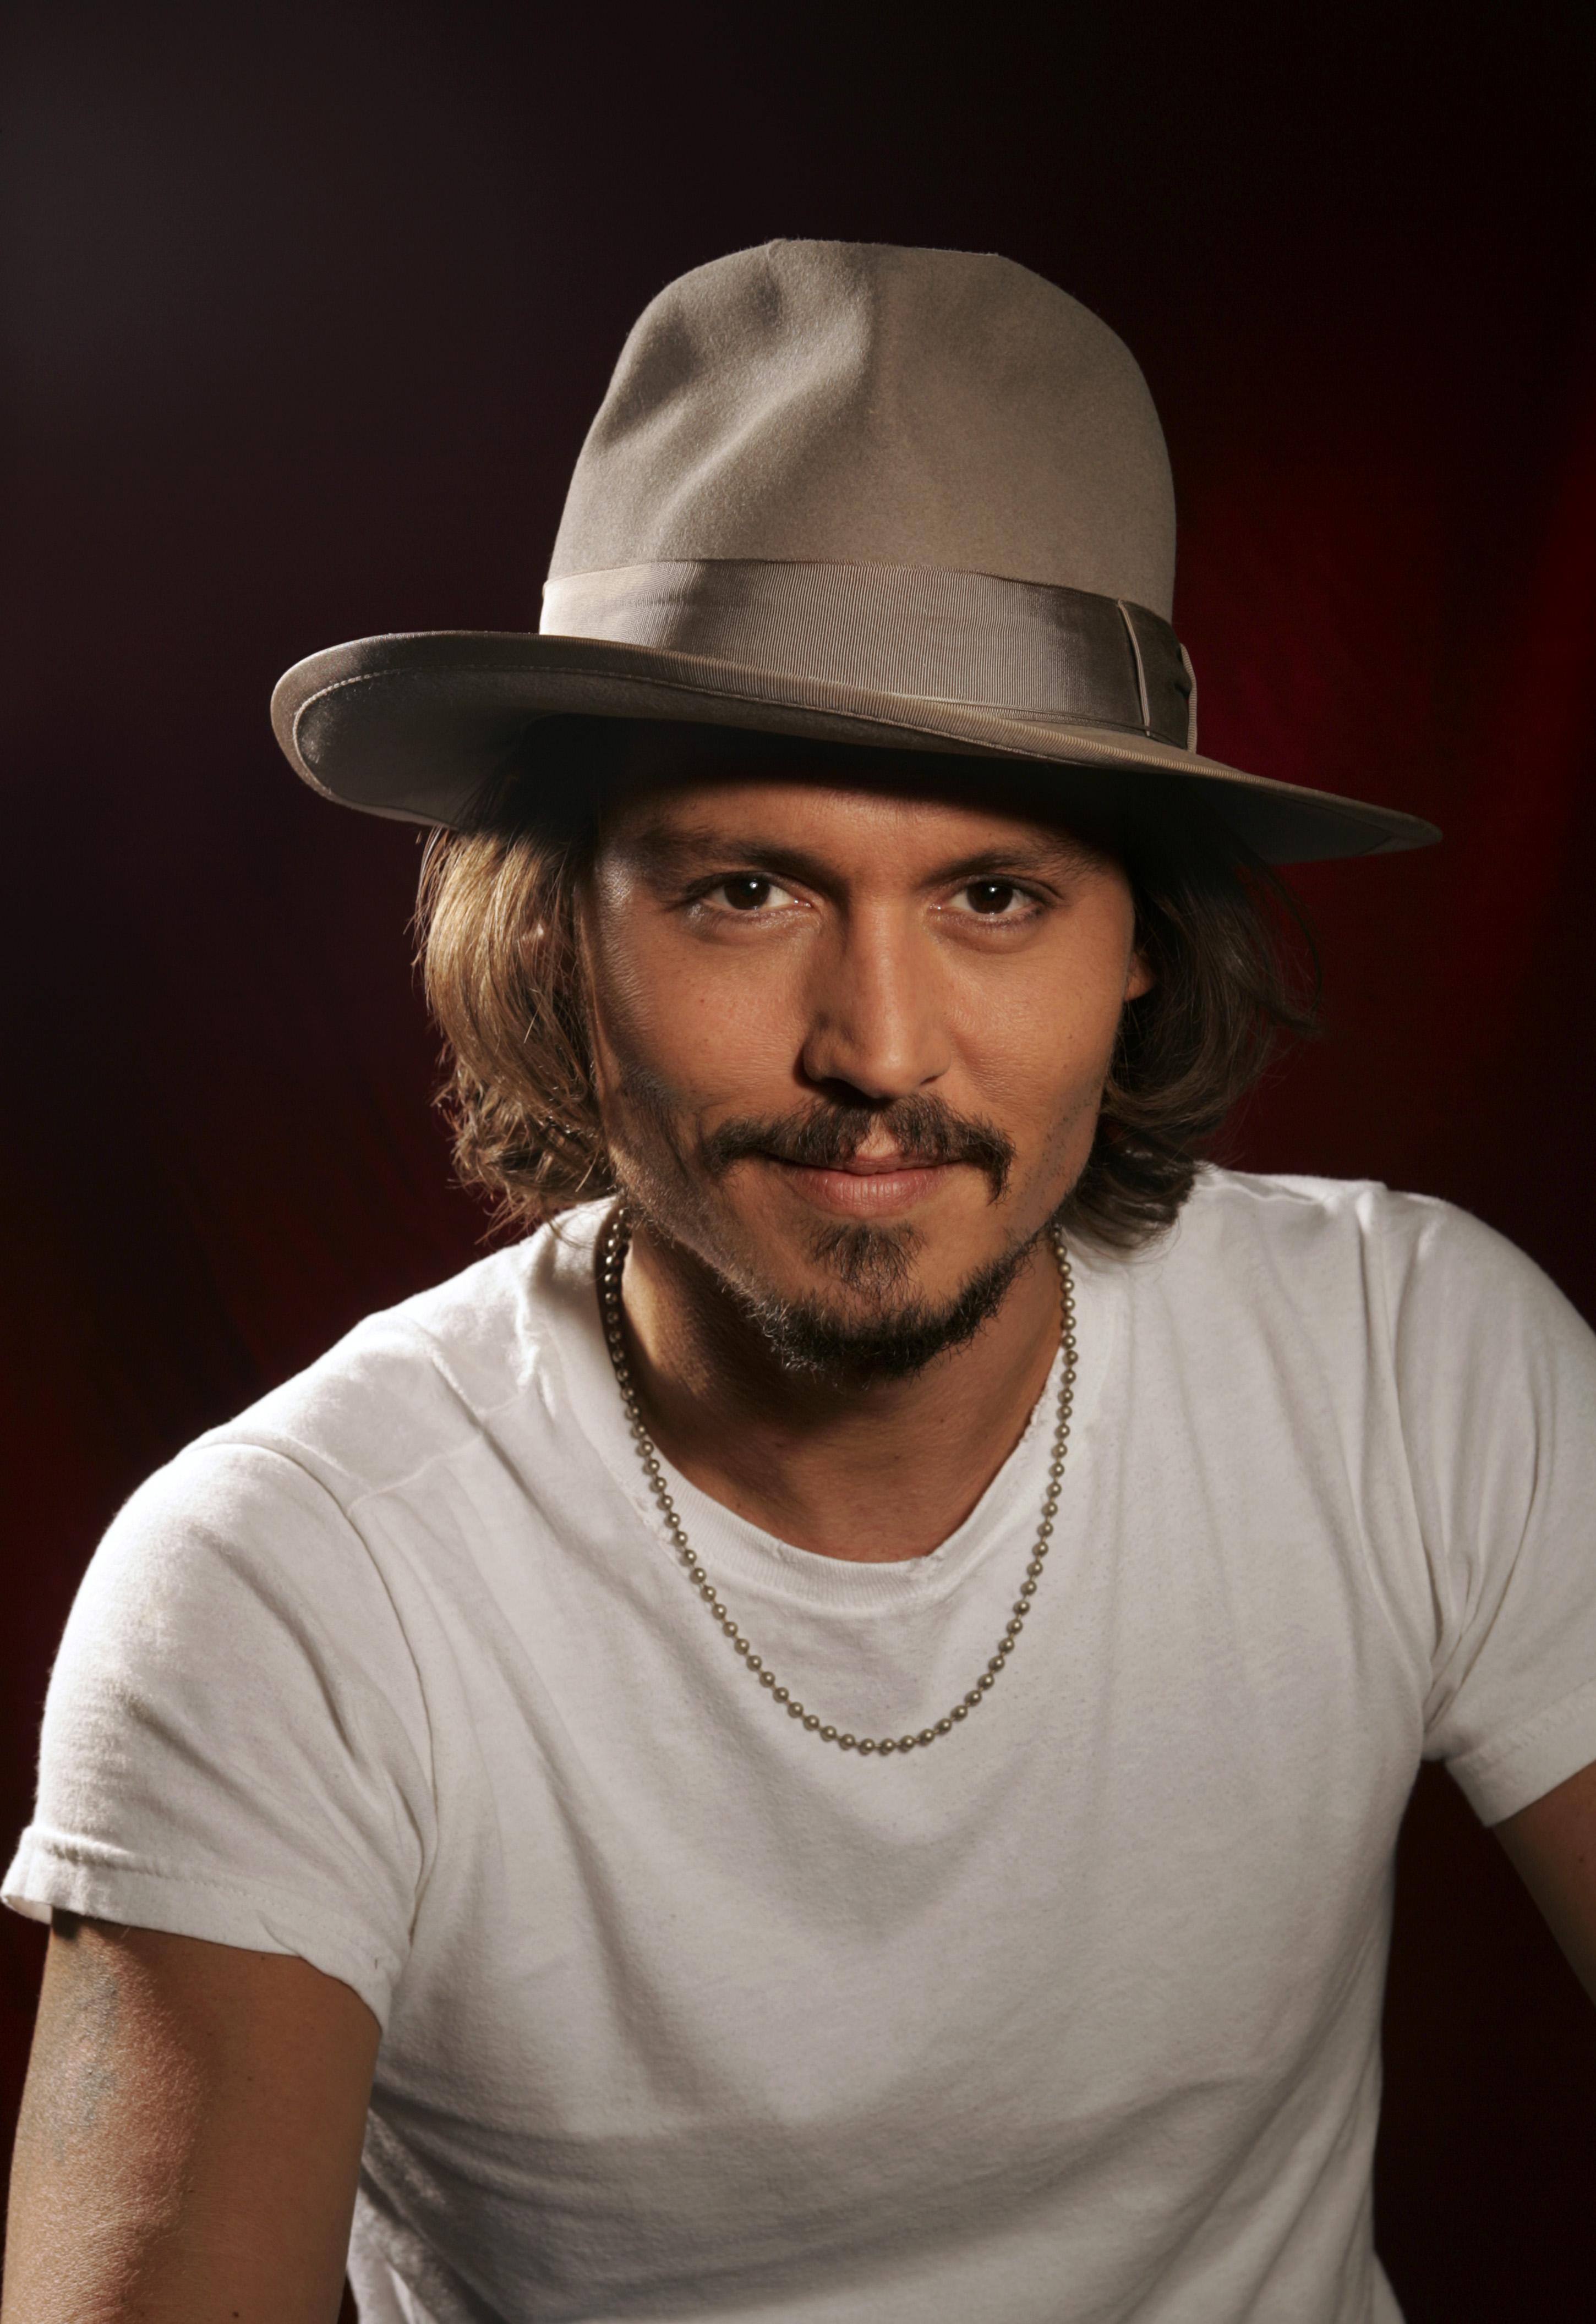 jhonny depp Johnny depp biography, news, photos, videos, movie reviews, music, footage, press releases, comments, quotes | johnny depp (born 961963) johnny depp is an american actor who has played a.